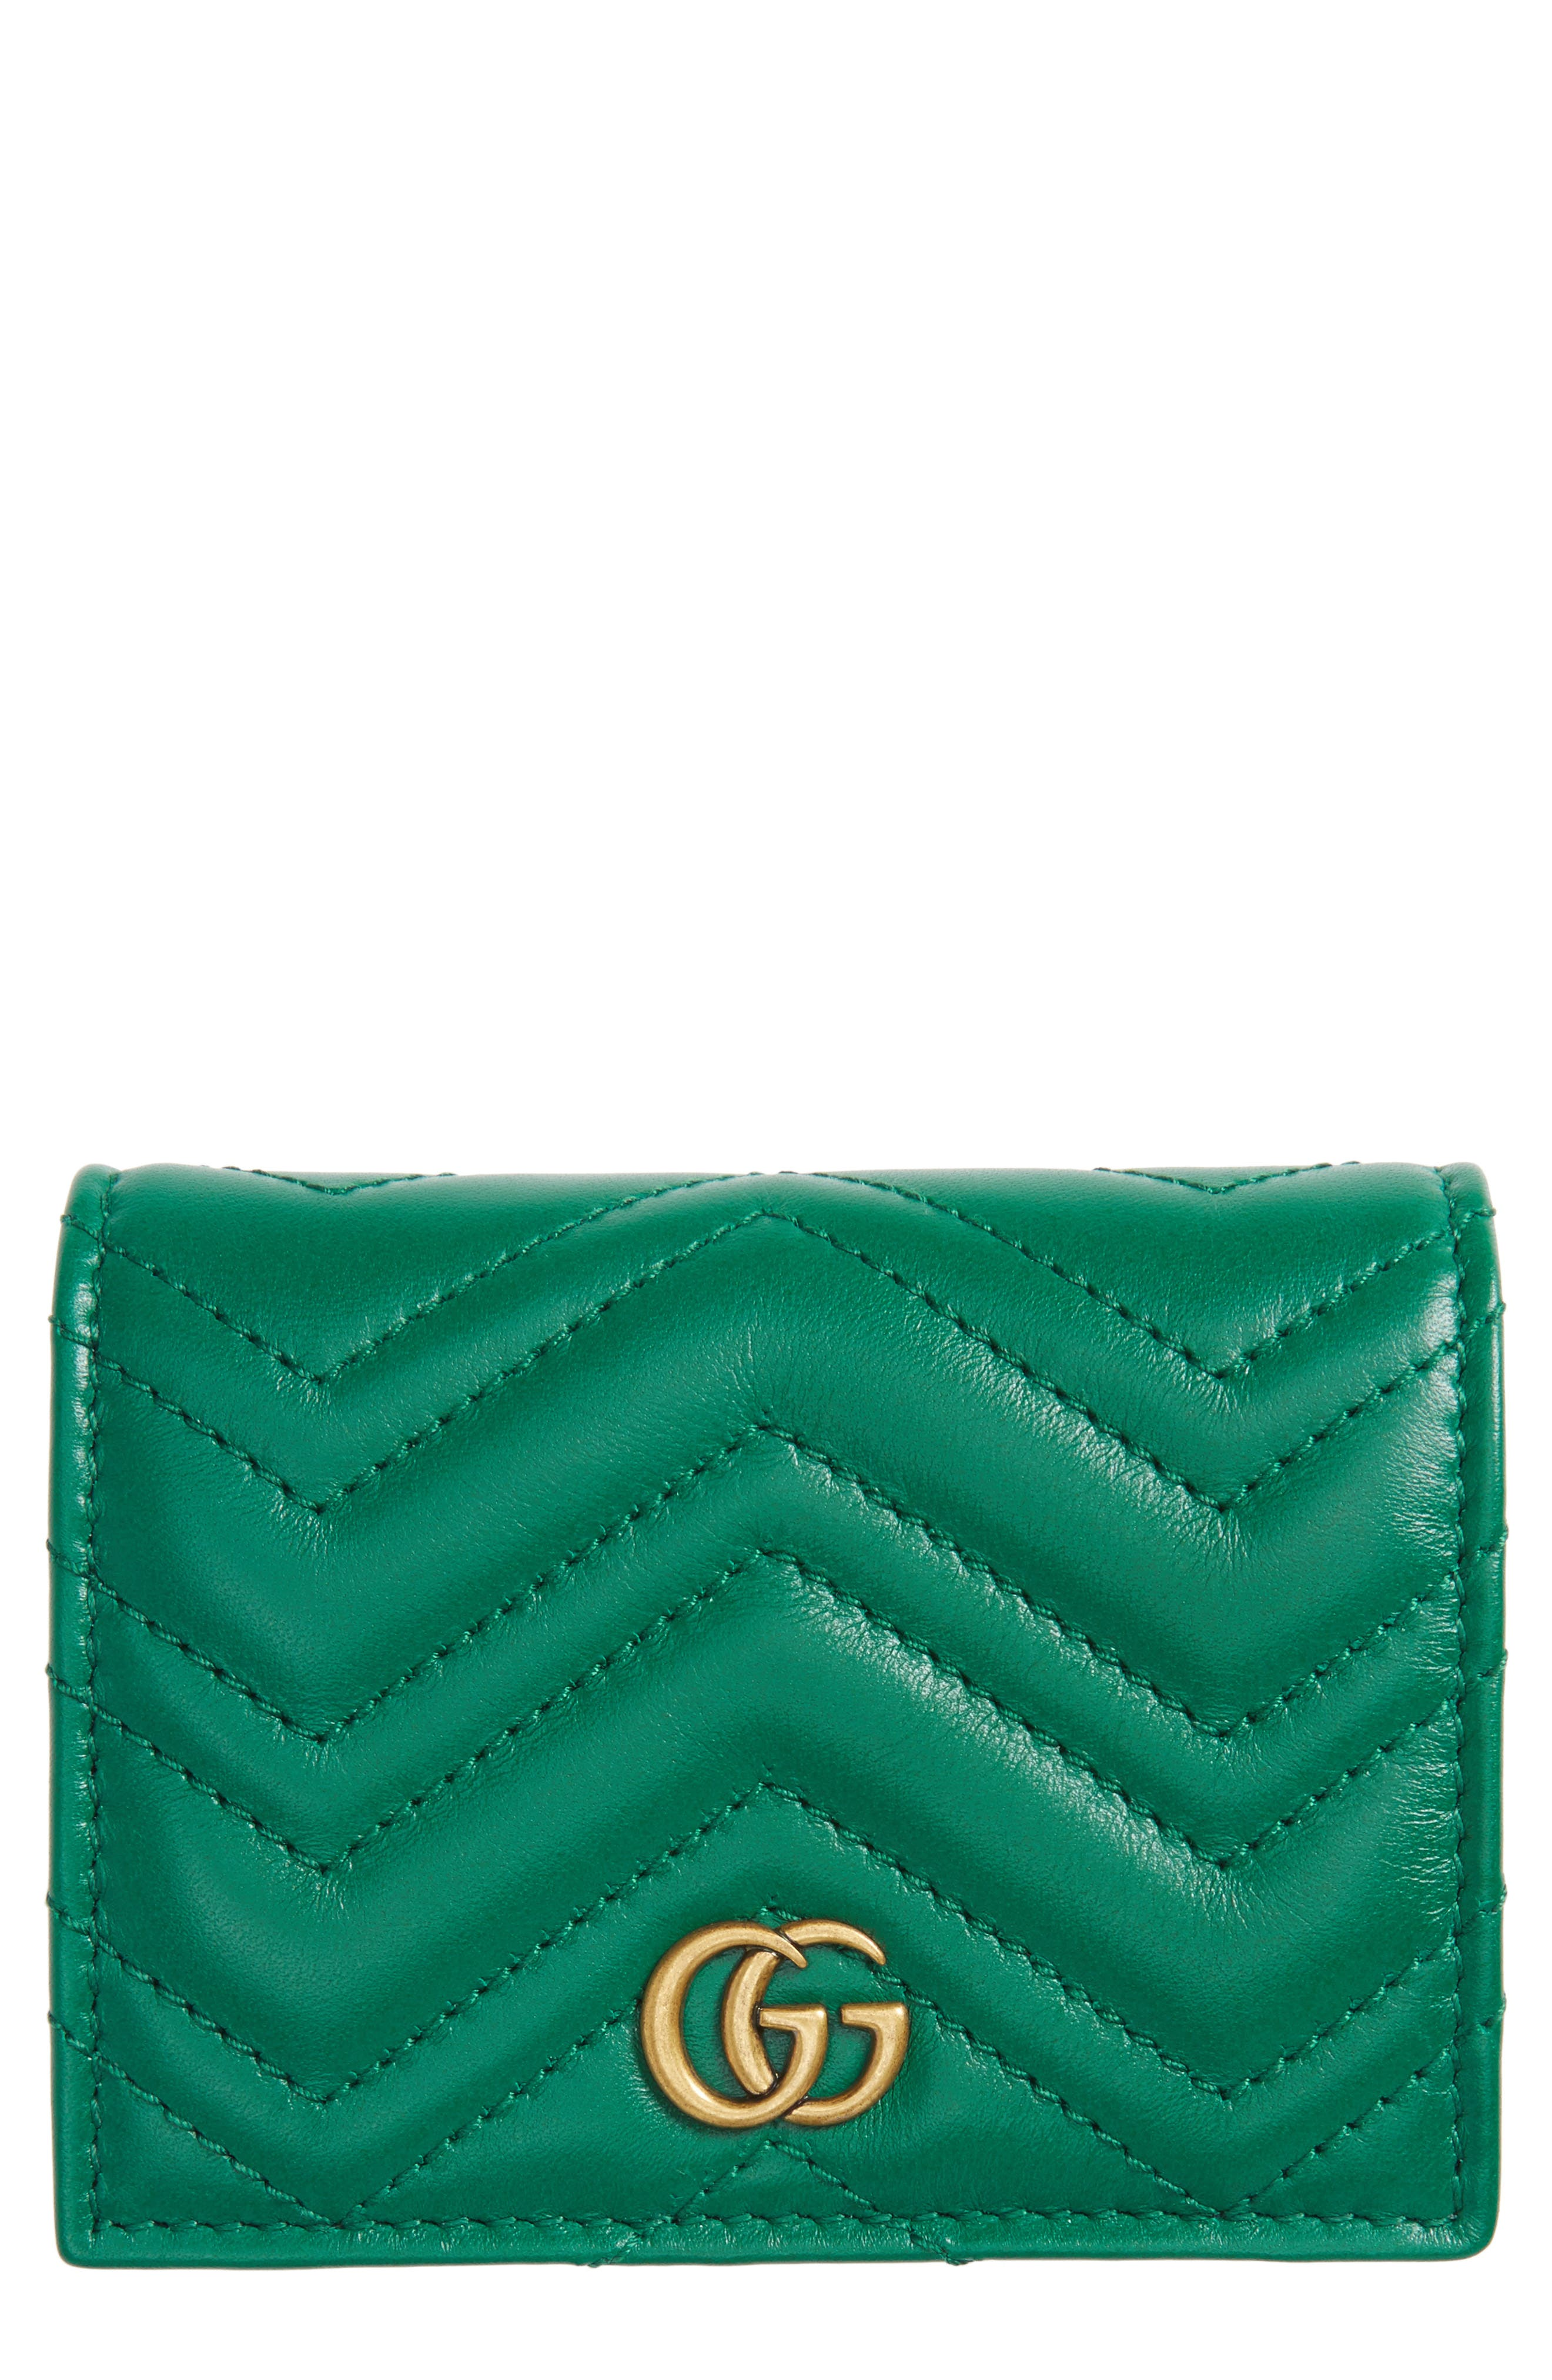 Alternate Image 1 Selected - Gucci GG Marmont Matelassé Leather Card Case